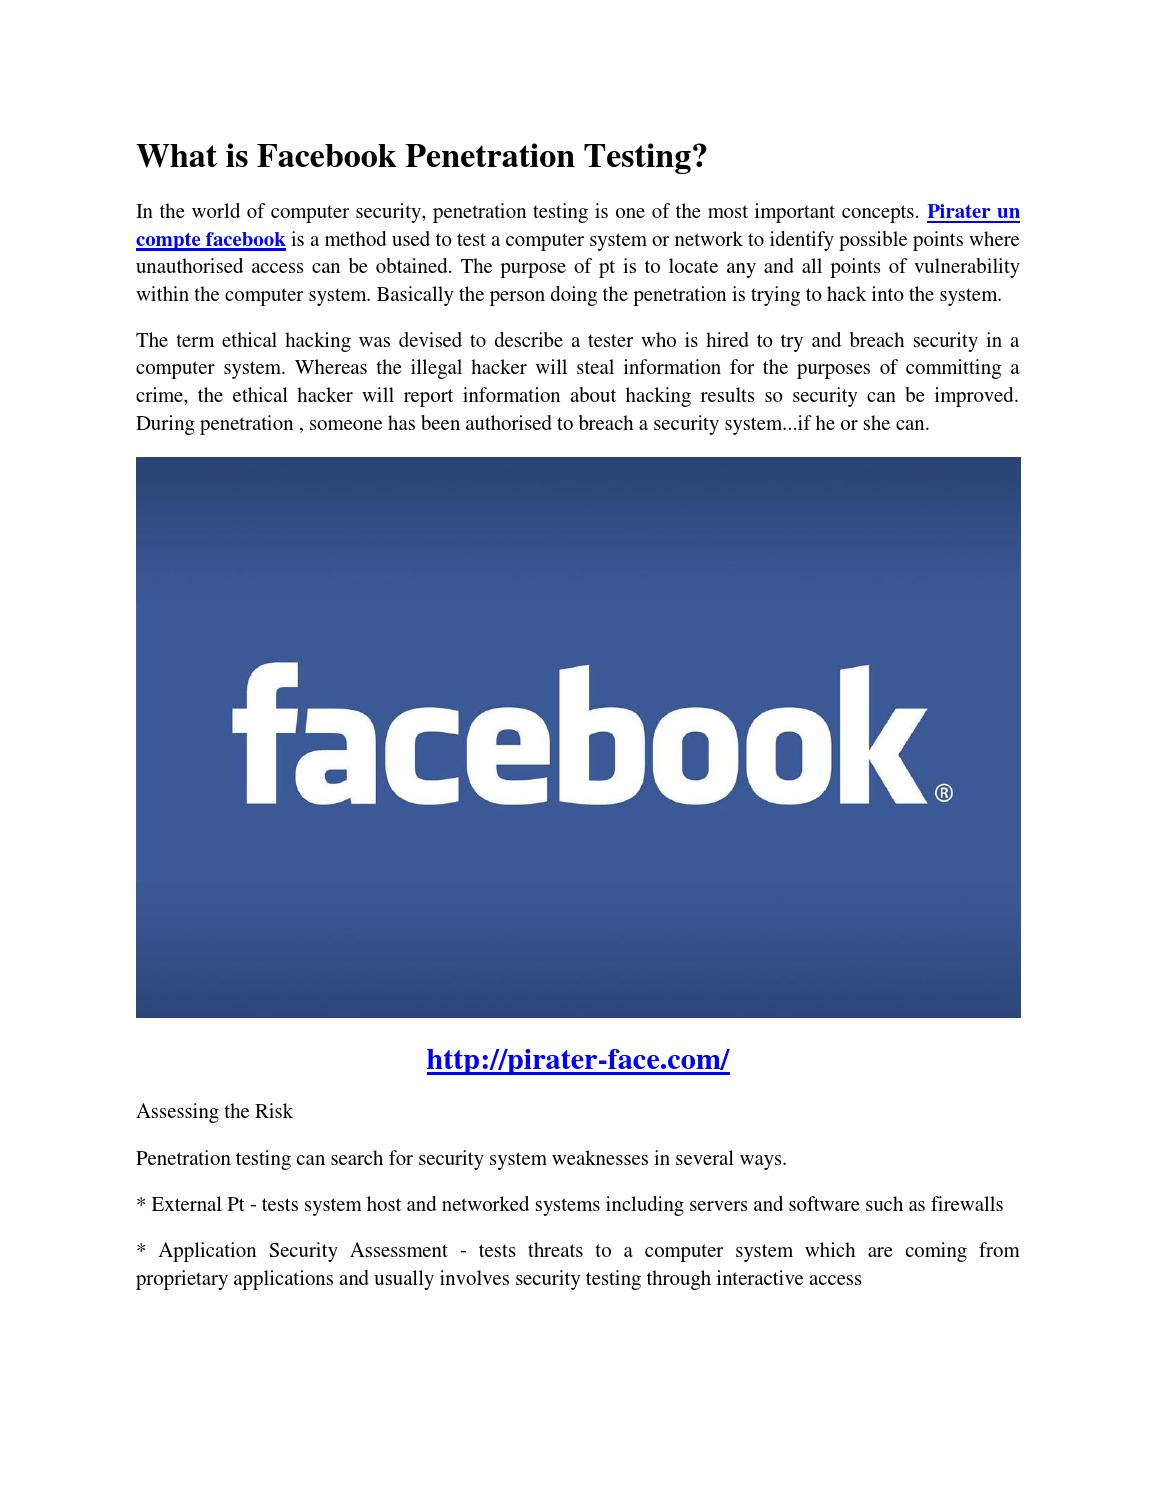 What is facebook penetration testing? by Mary Prewitt - issuu